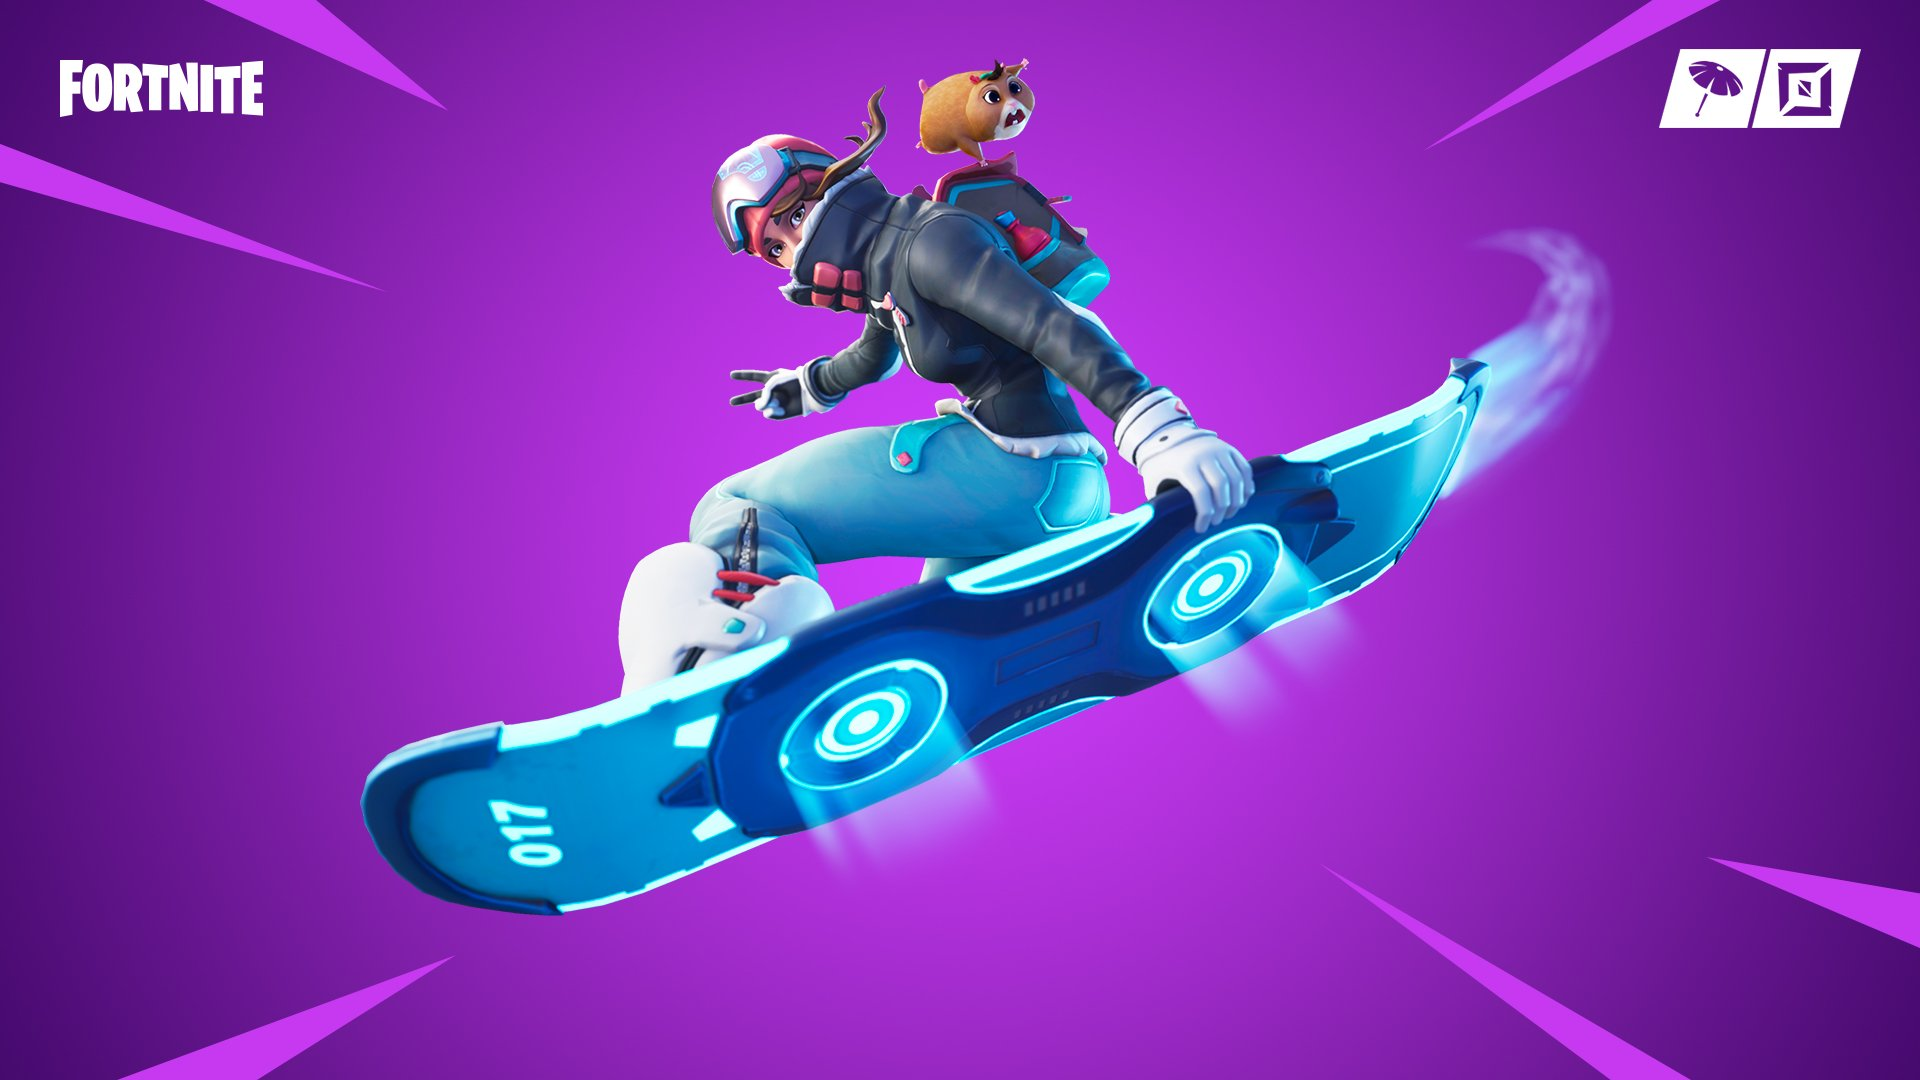 the driftboard limited time item lets you ride around in style and pull off tricks while firing at enemies you can get a driftboard from a red supply drop - fortnite patch notes 730 content update